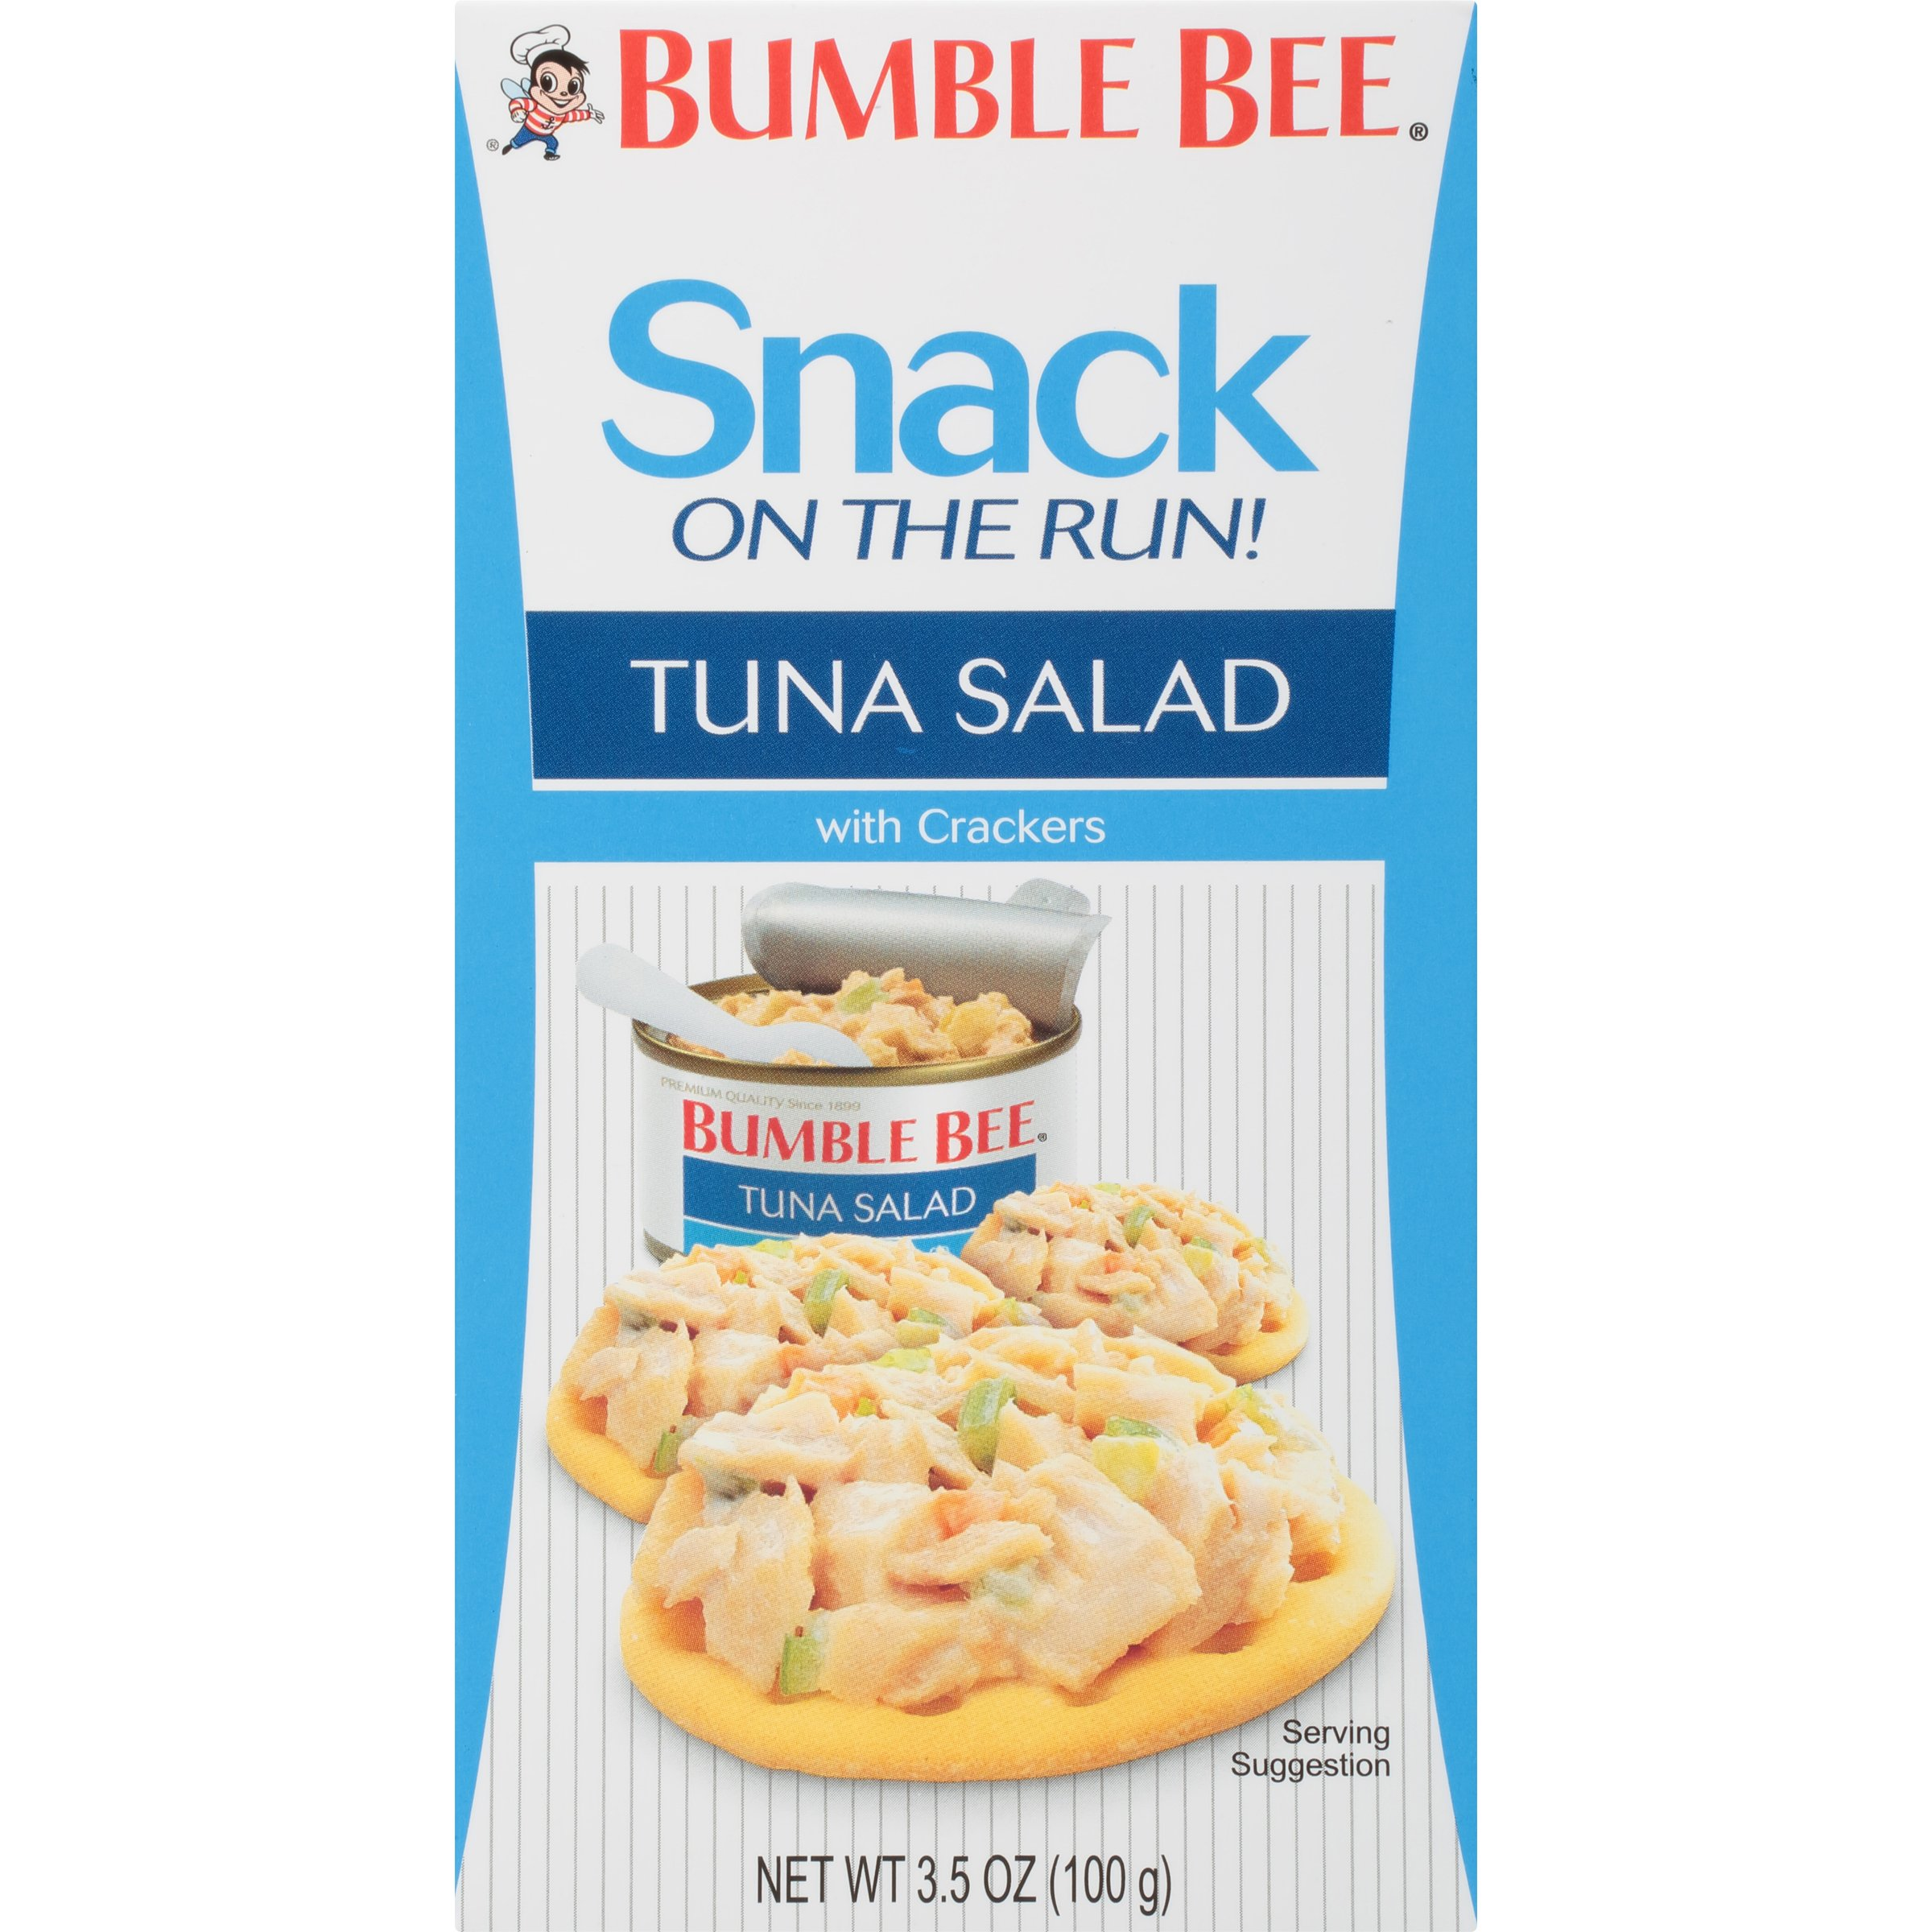 Bumble bee snack on the run salmon salad with crackers kit 12 count tuna salad with crackers canned tuna salad solutioingenieria Gallery